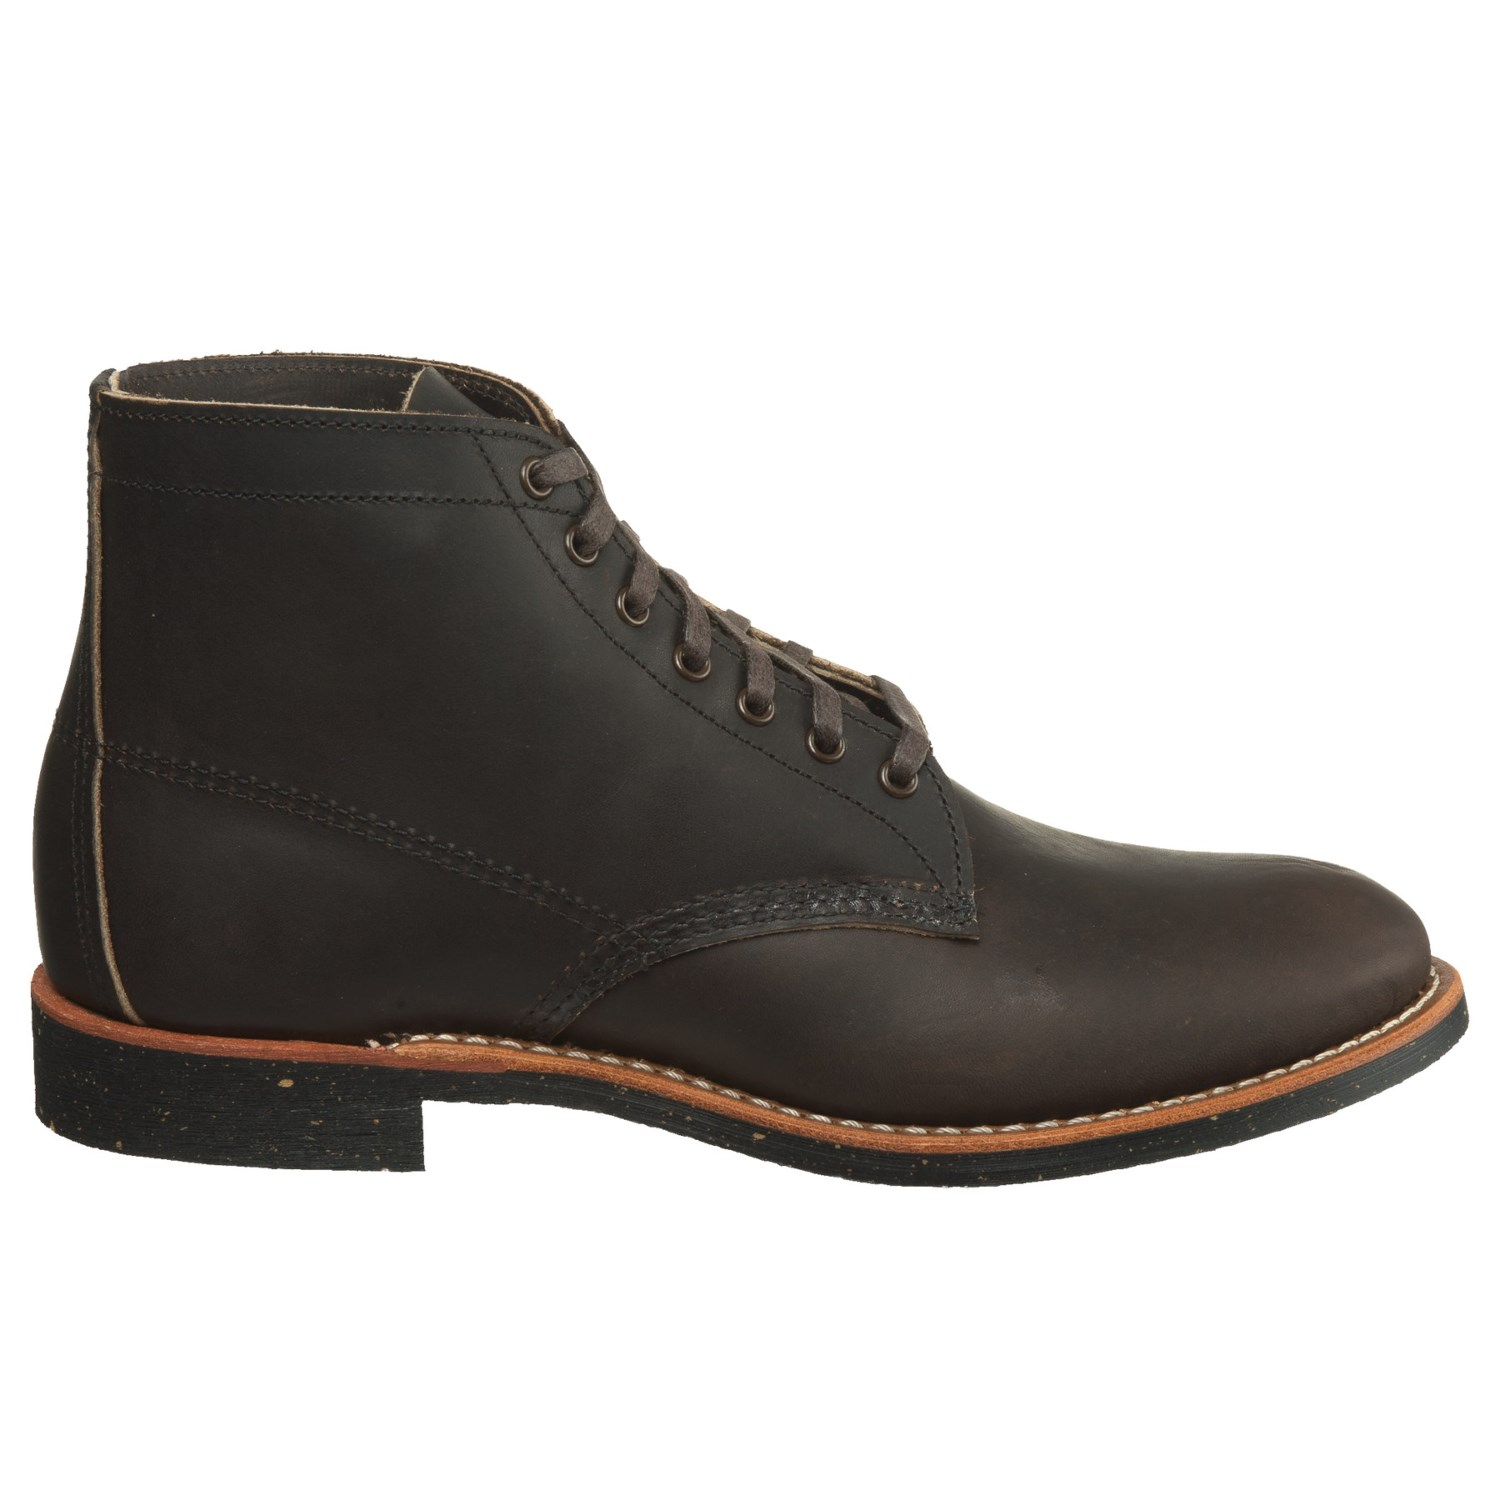 Red Wing Shoes Nj